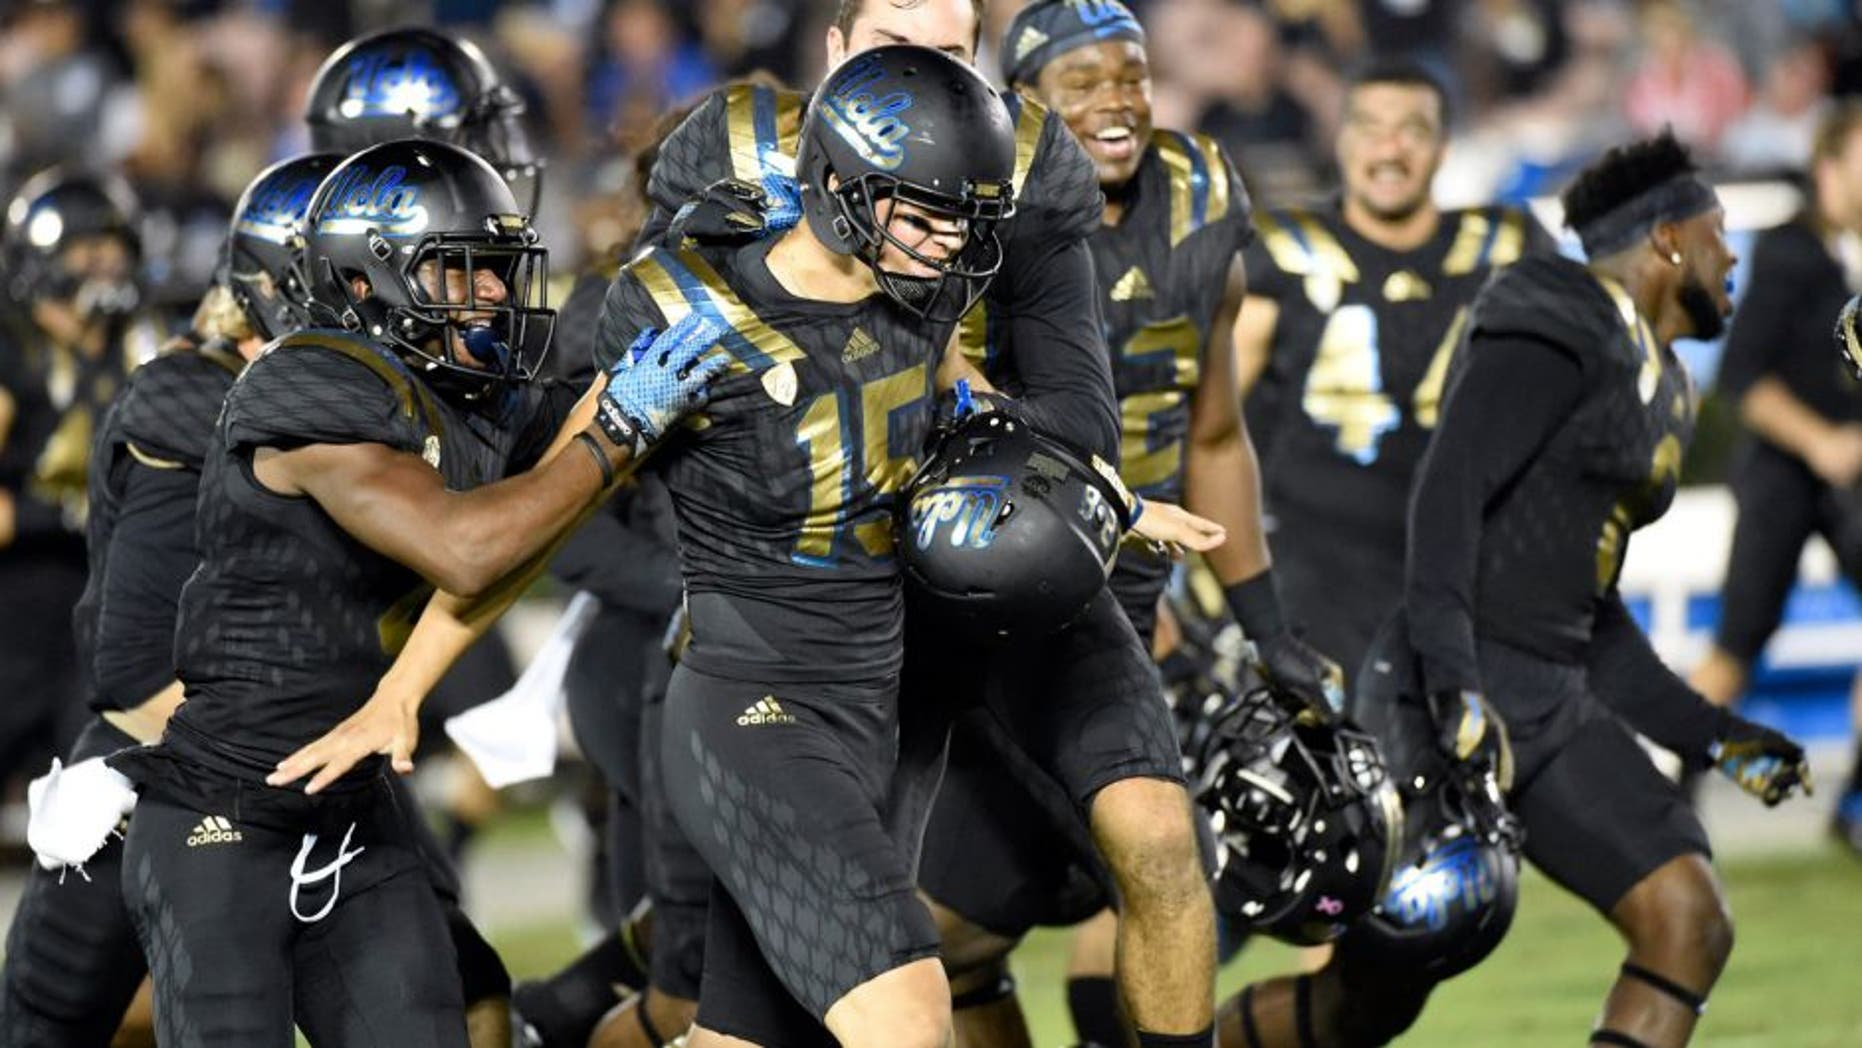 Oct 22, 2015; Pasadena, CA, USA; UCLA Bruins place kicker Ka'imi Fairbairn (15) celebrates making a sixty-yard field goal against the California Golden Bears during the second quarter at Rose Bowl. Mandatory Credit: Richard Mackson-USA TODAY Sports